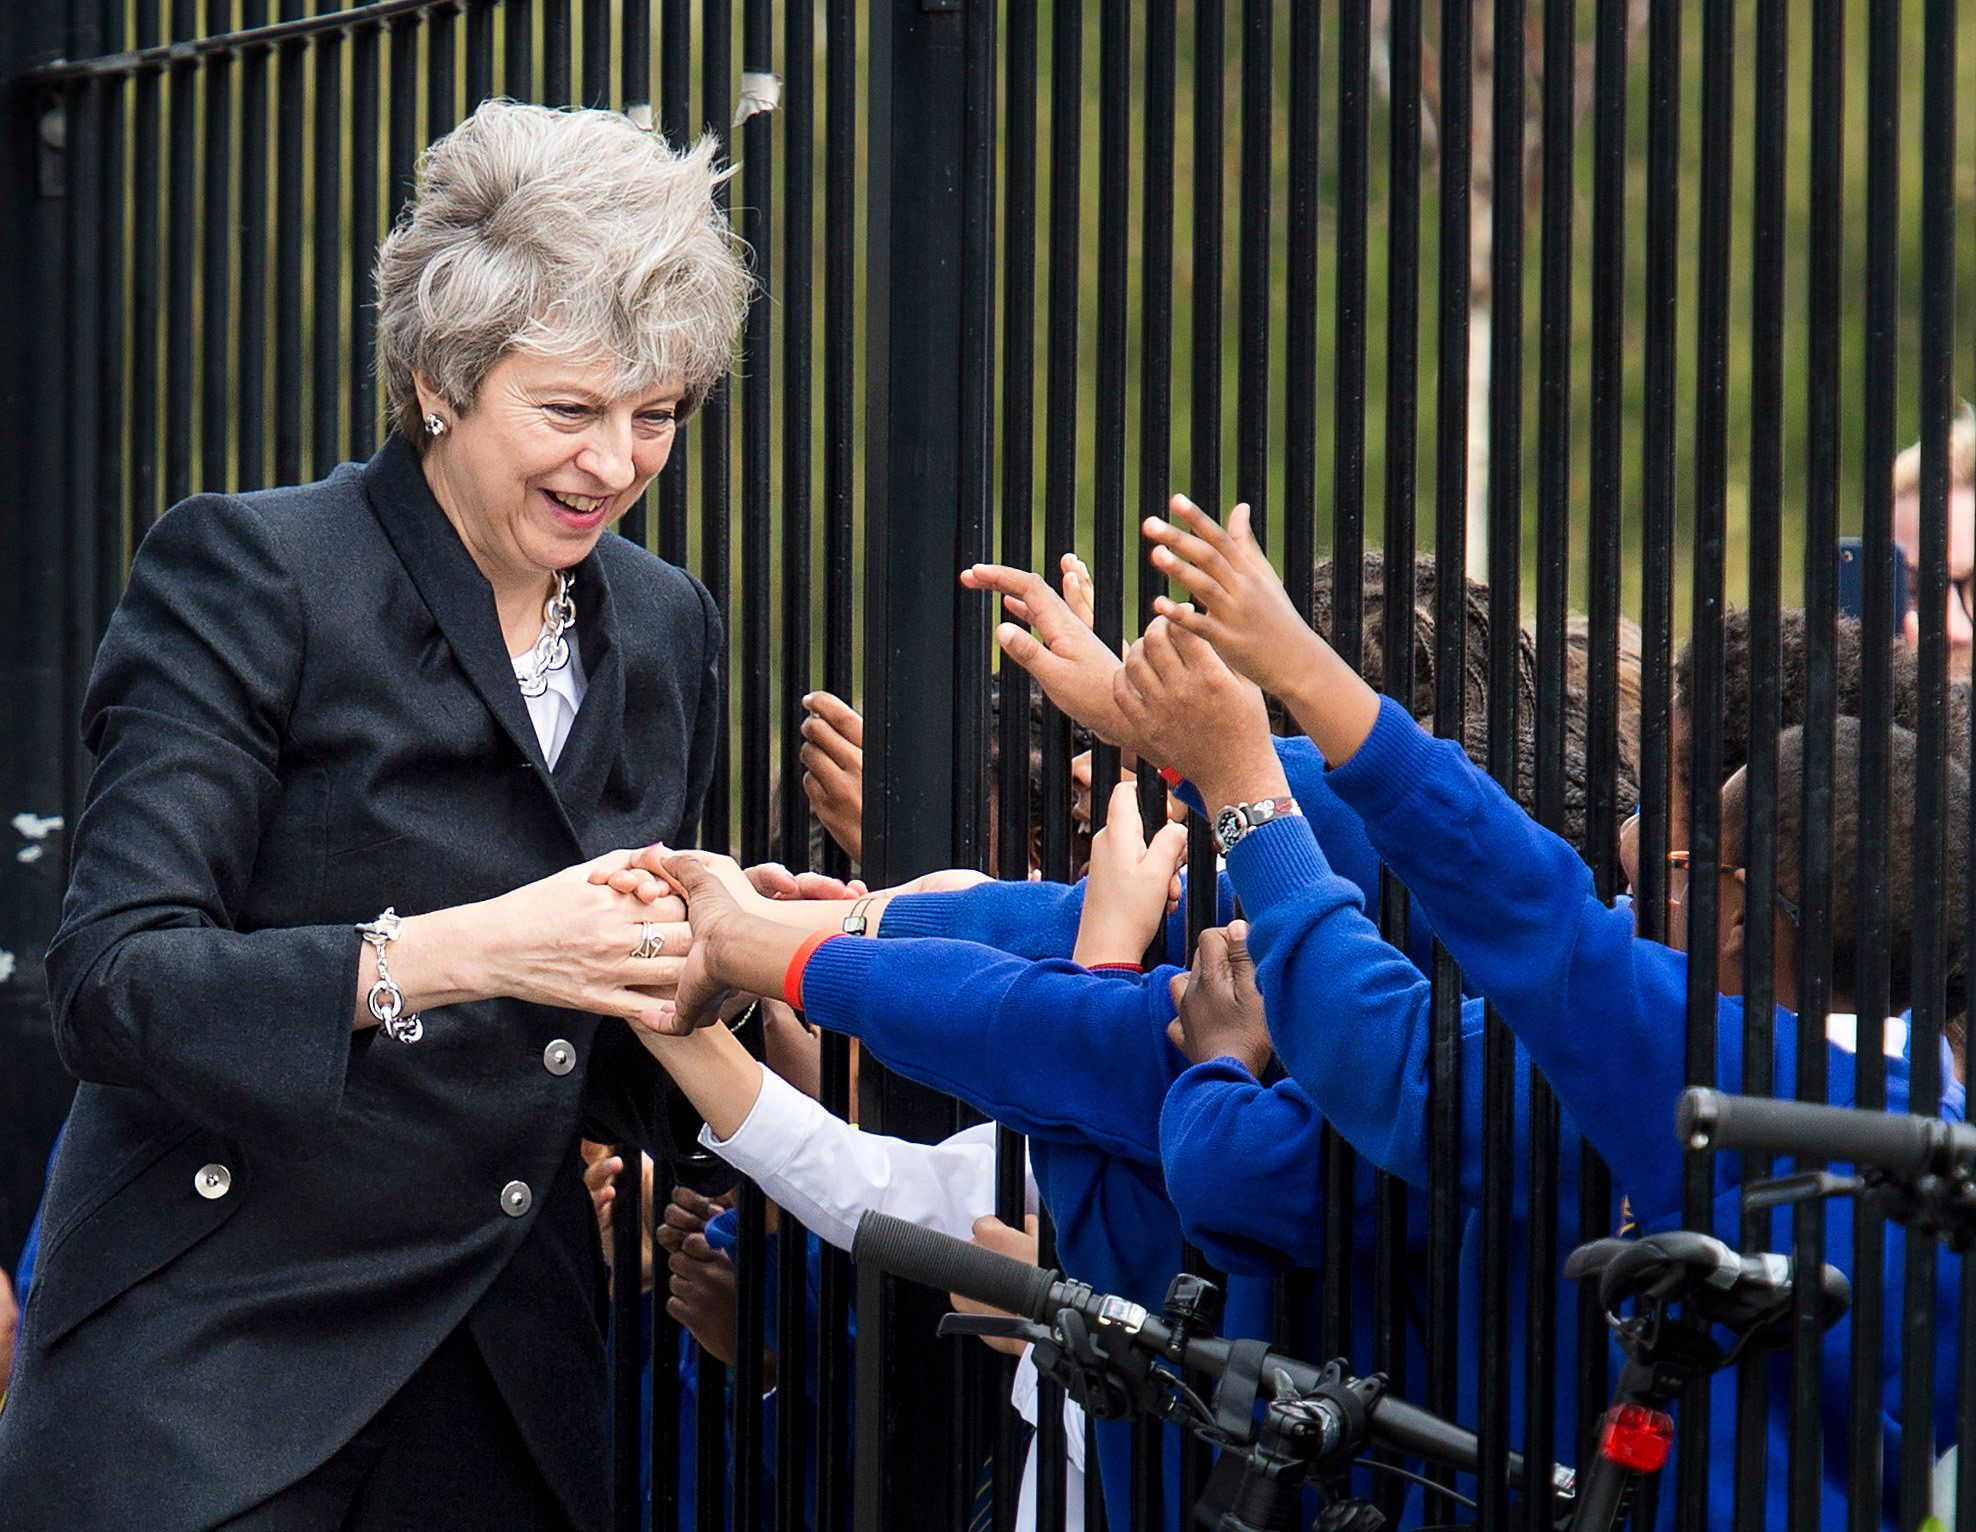 Government pledges to tackle ethnic inequalities in schools